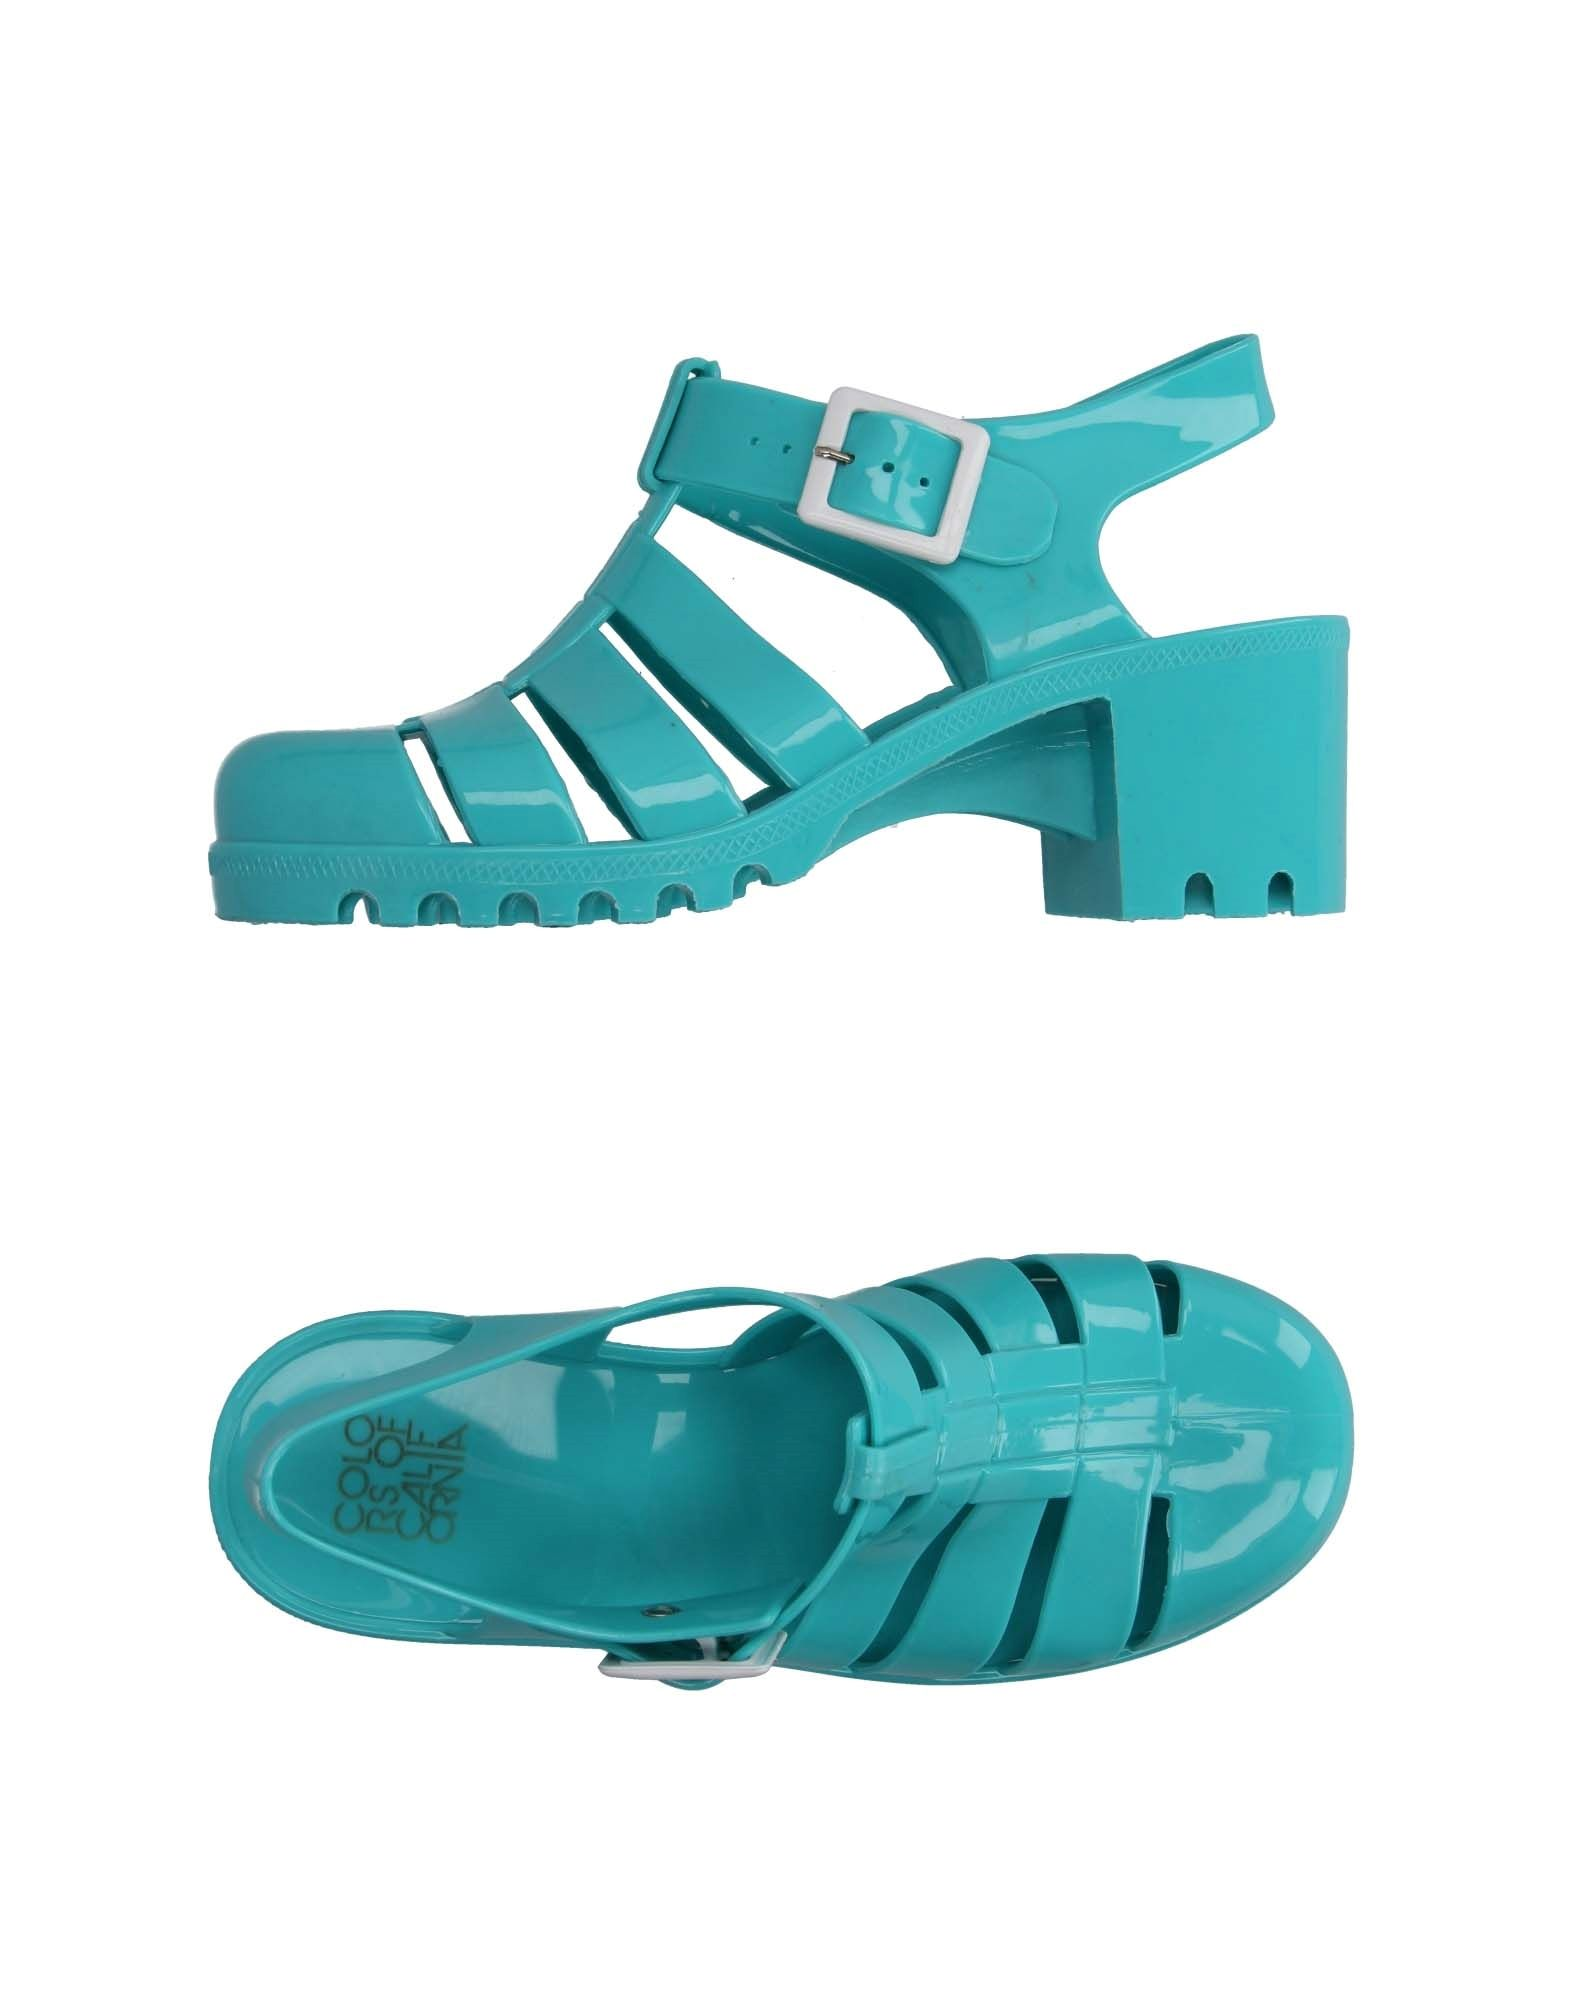 COLORS OF CALIFORNIA Sandals